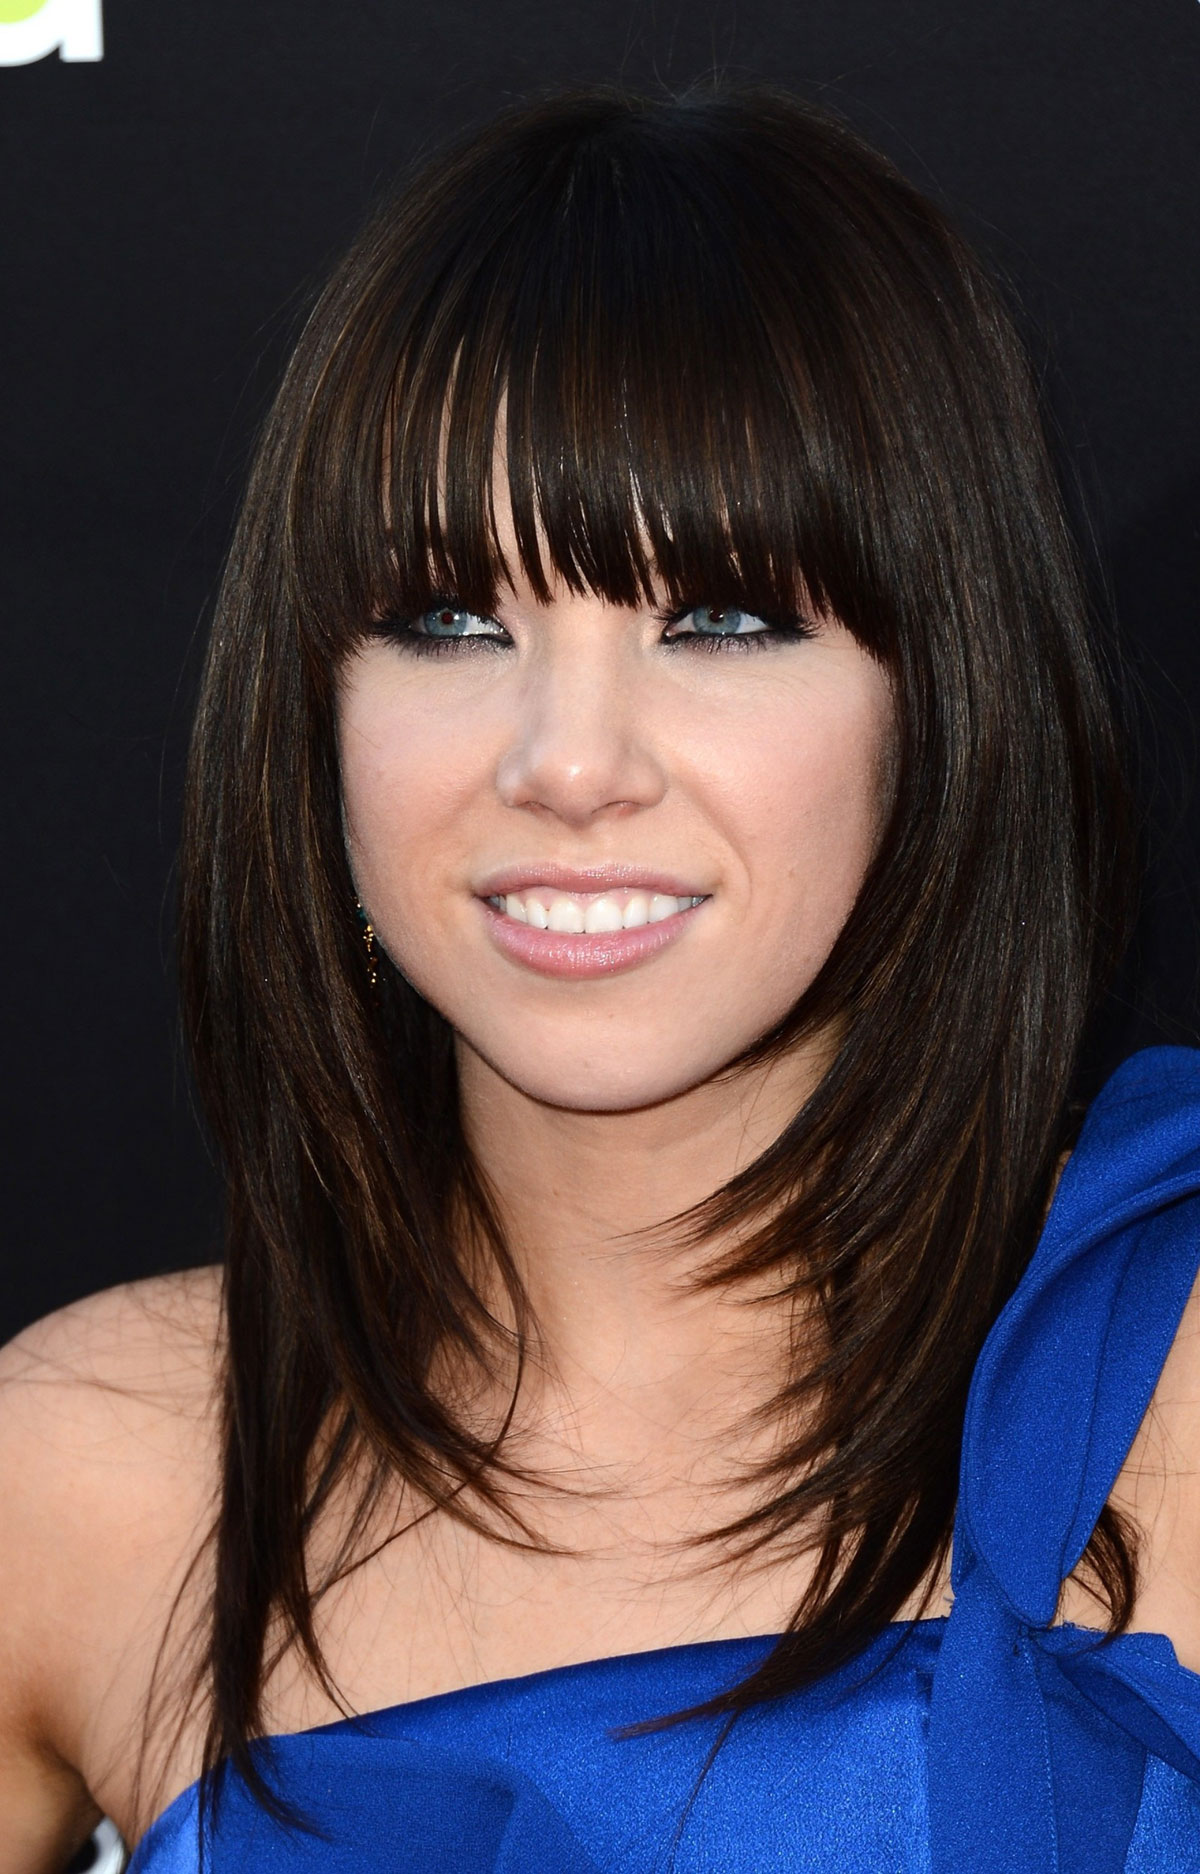 CARLY RAE JEPSEN at Katy Perry